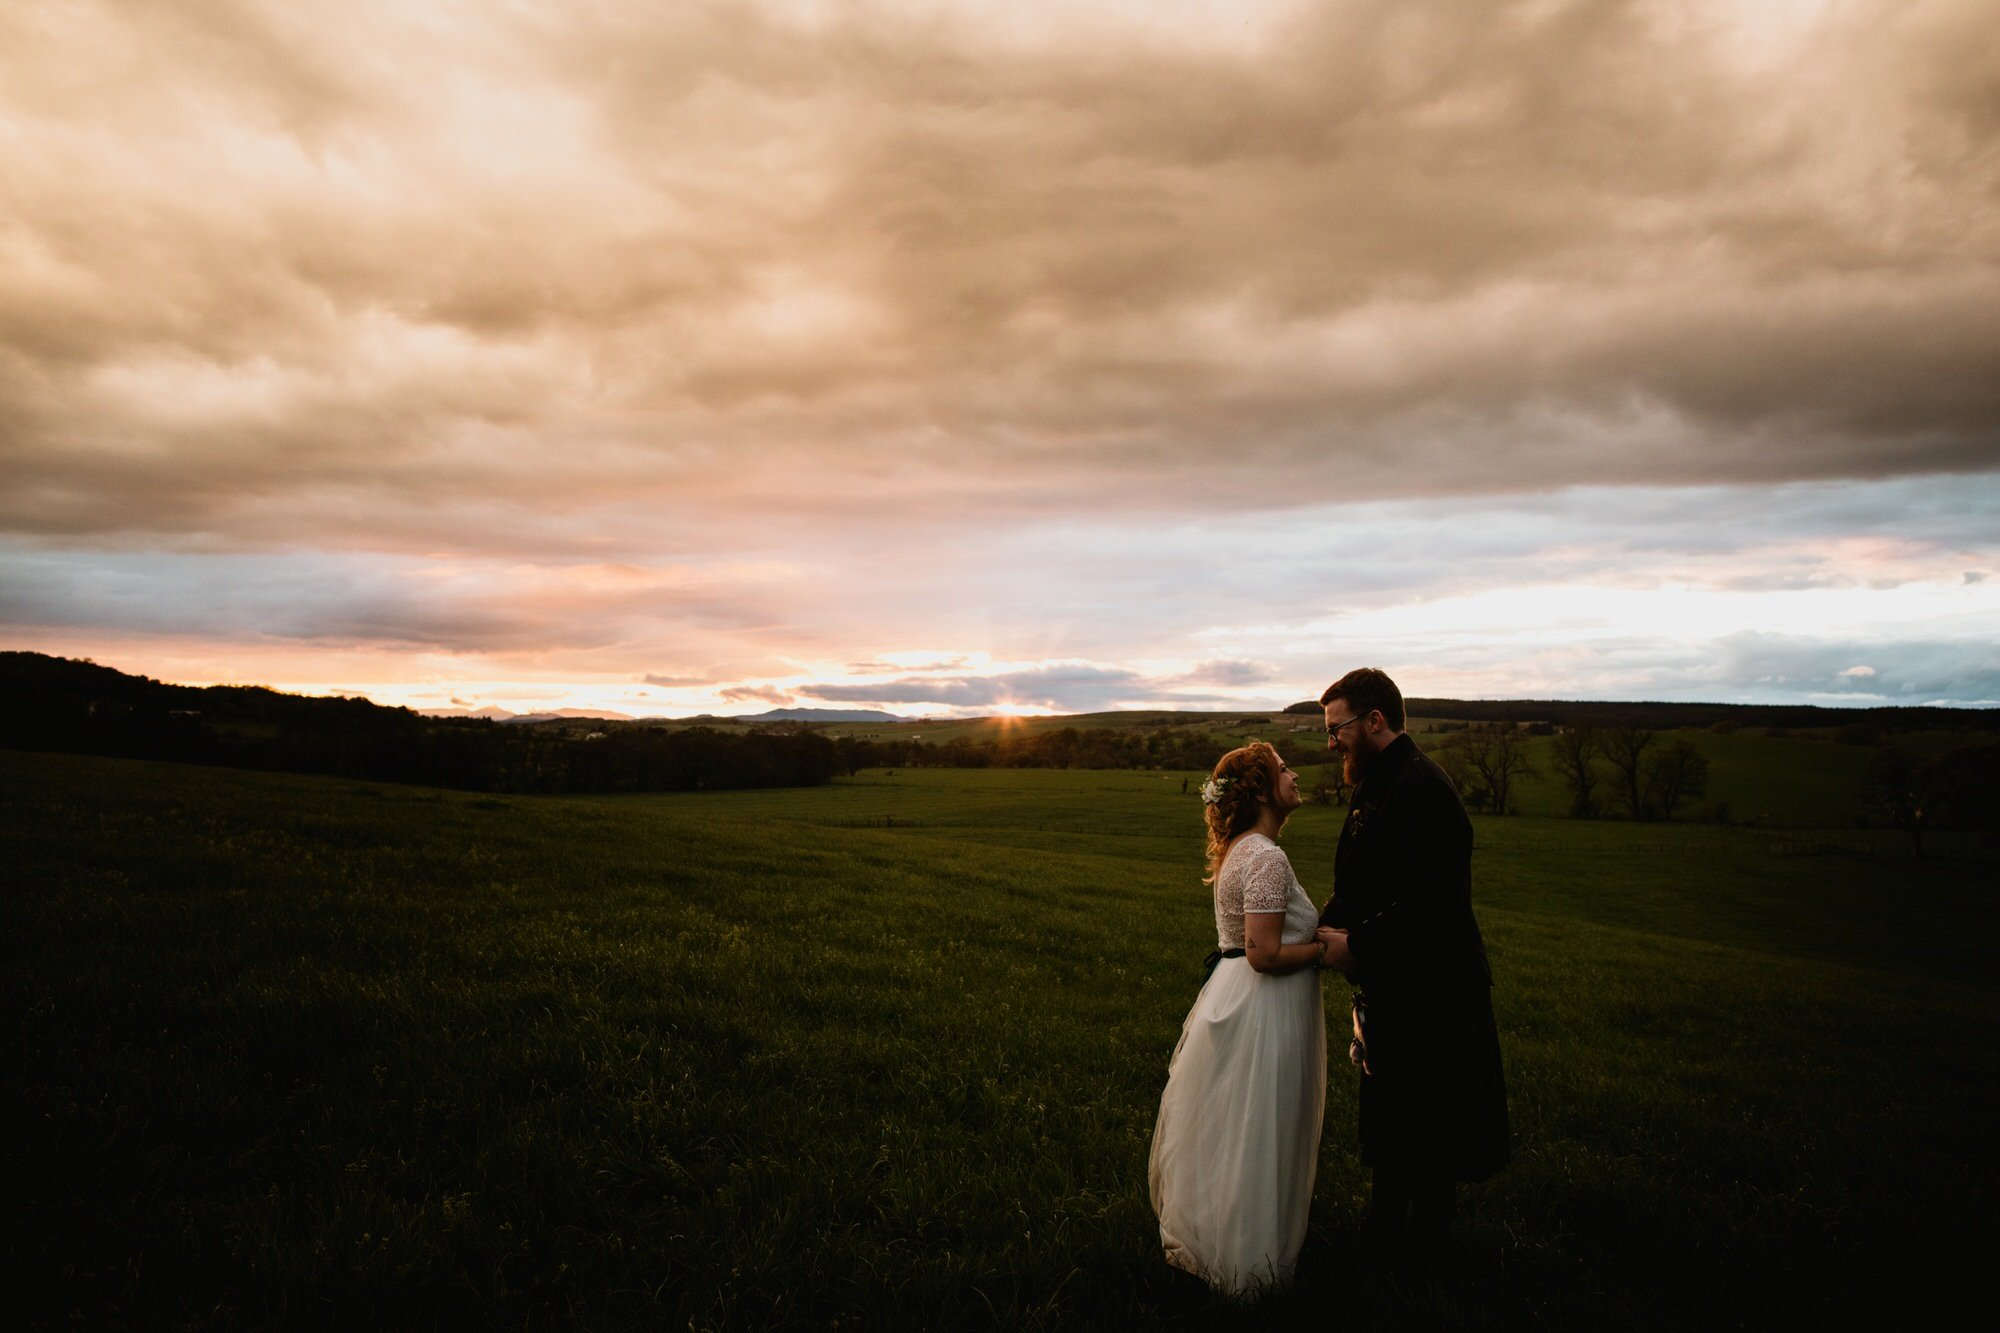 069 FINTRY GOLDEN HOUR SUNSET STIRLINGSHIRE TIN SHED KNOCKRAICH WEDDING AUSTRIAN SCOTTISH ZOE ALEXANDRA PHOTOGRAPHY